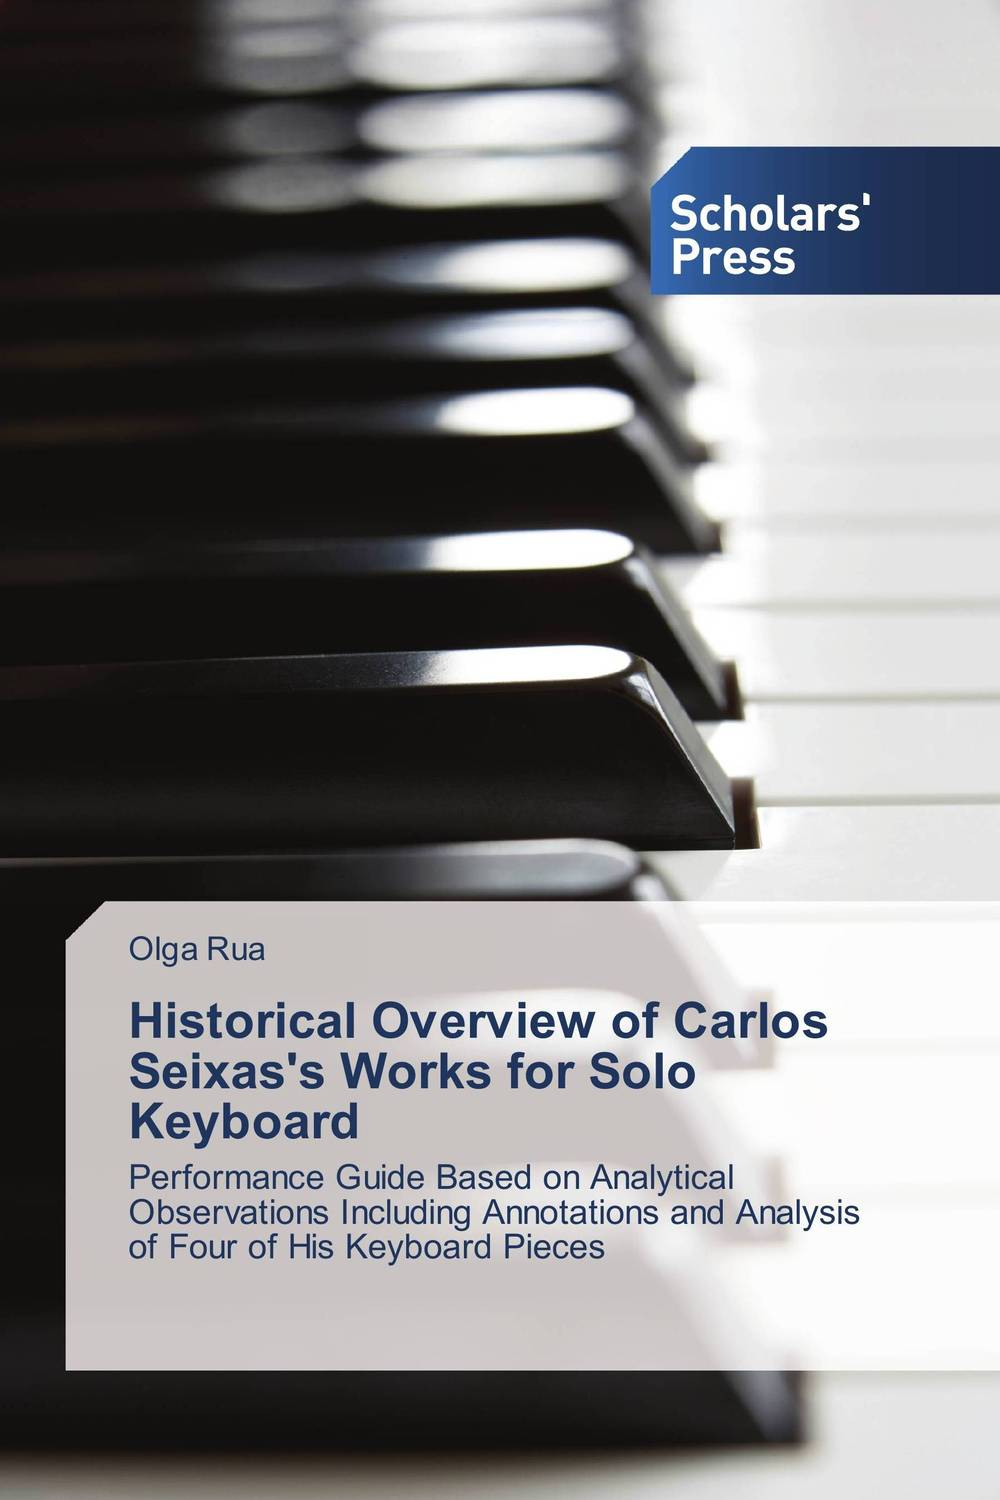 Historical Overview of Carlos Seixas's Works for Solo Keyboard pla nanocomposite an overview